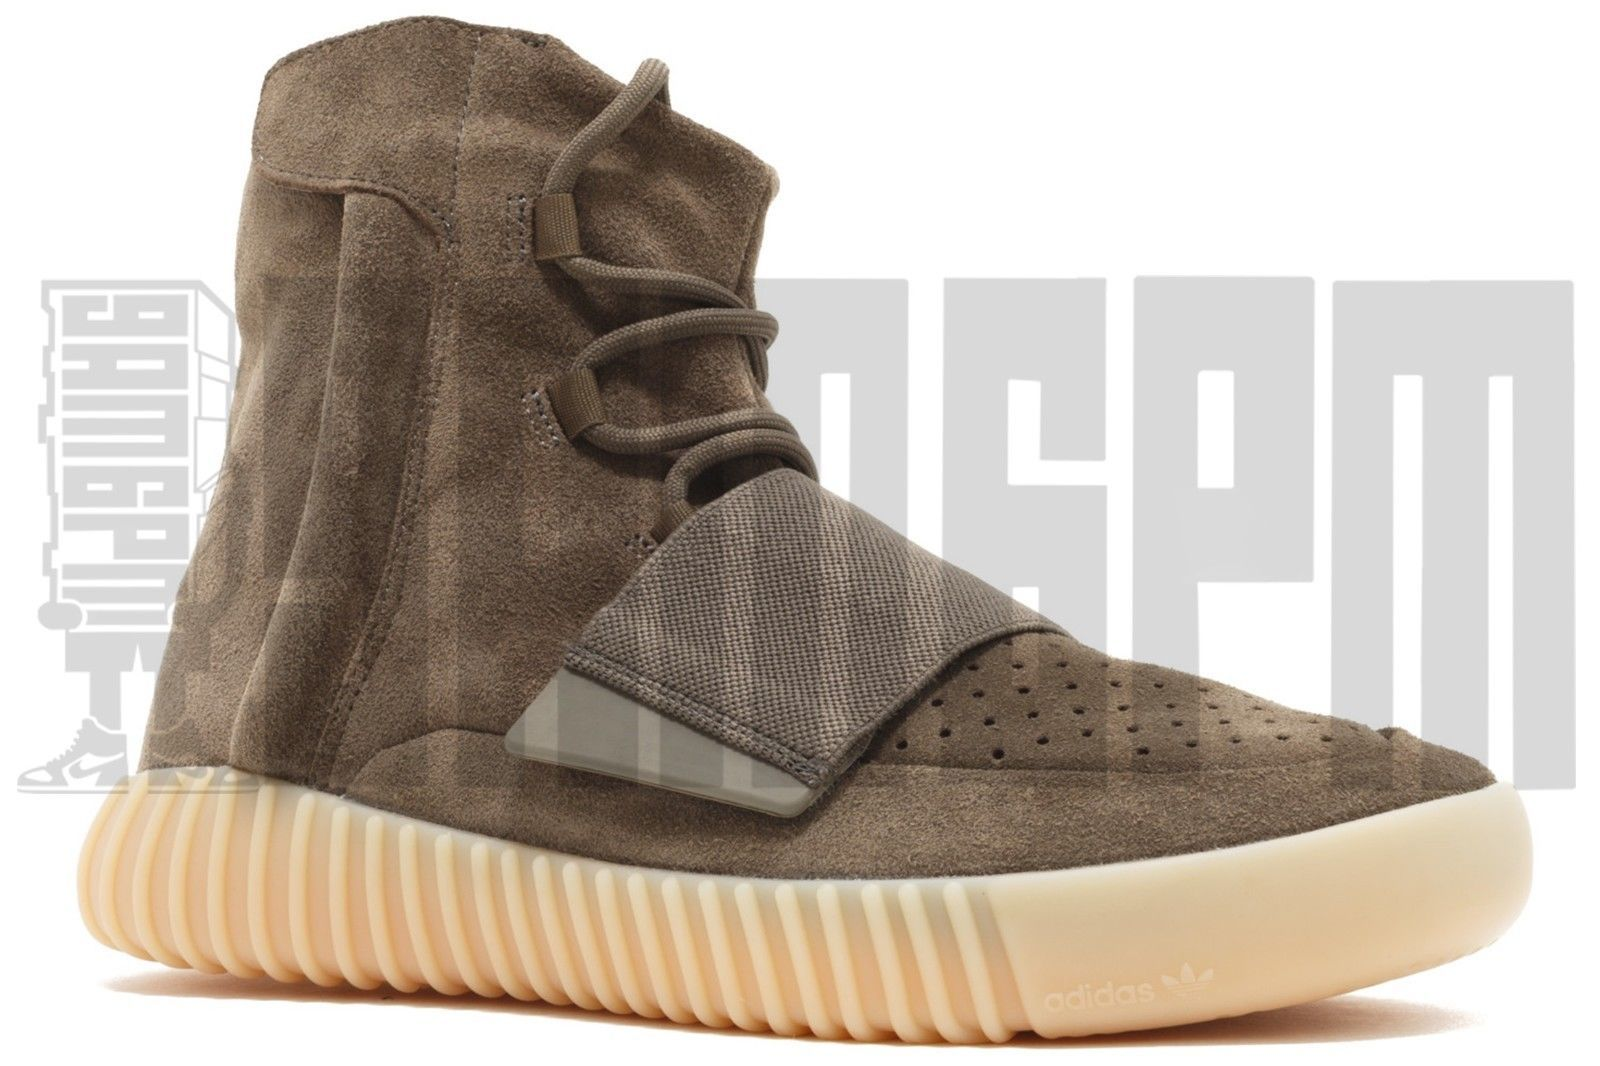 Adidas YEEZY BOOST 750 8 9 10 11 12 BROWN GUM SUEDE v1 turtle dove oxford